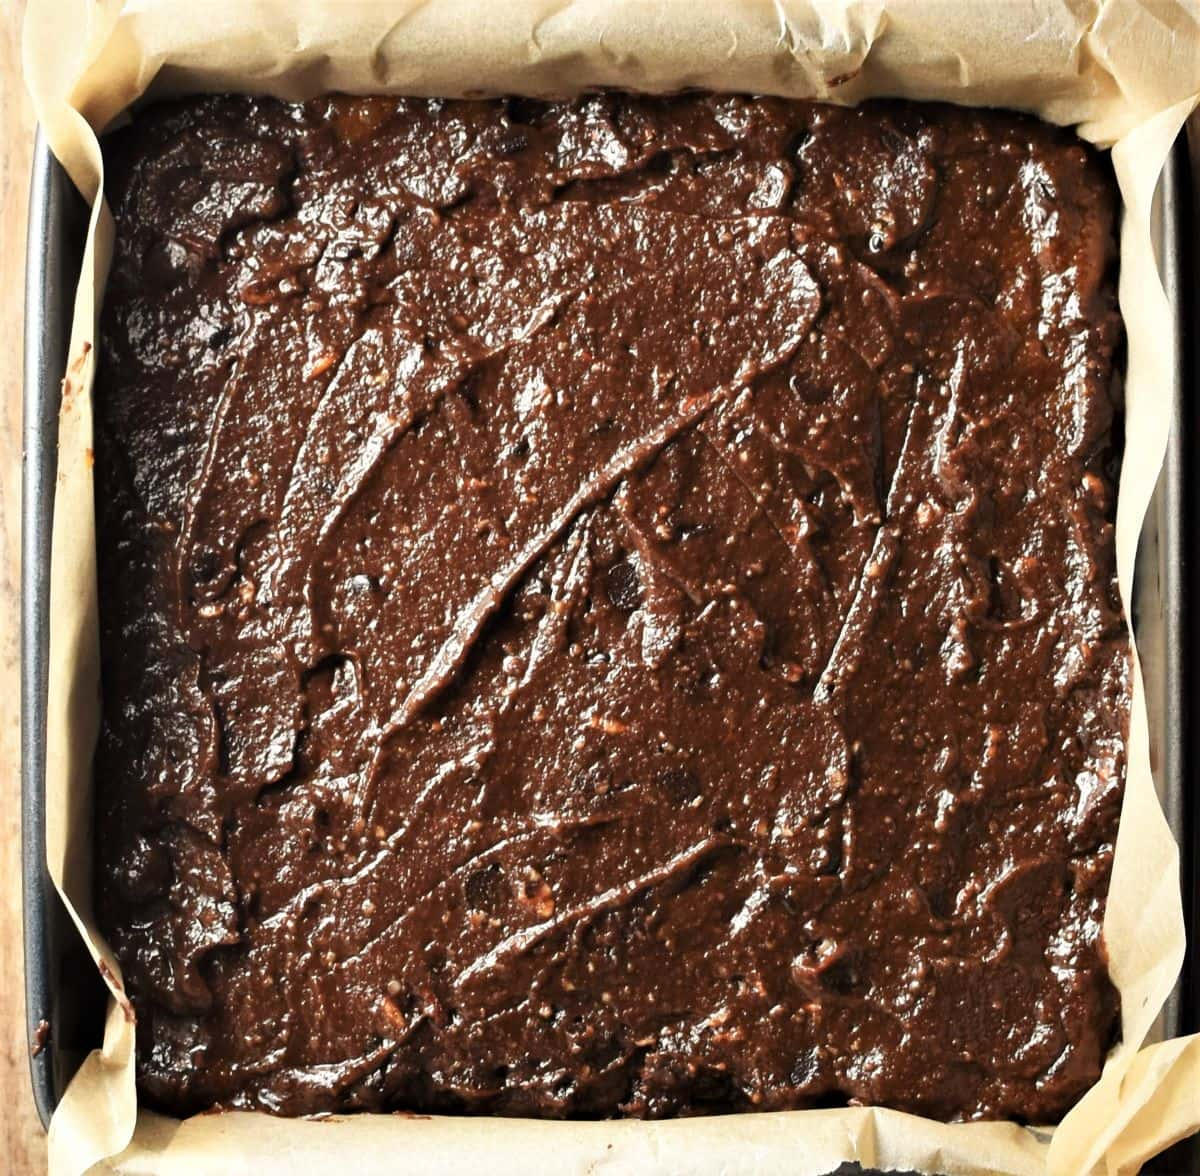 Unbaked brownies cake in square pan.